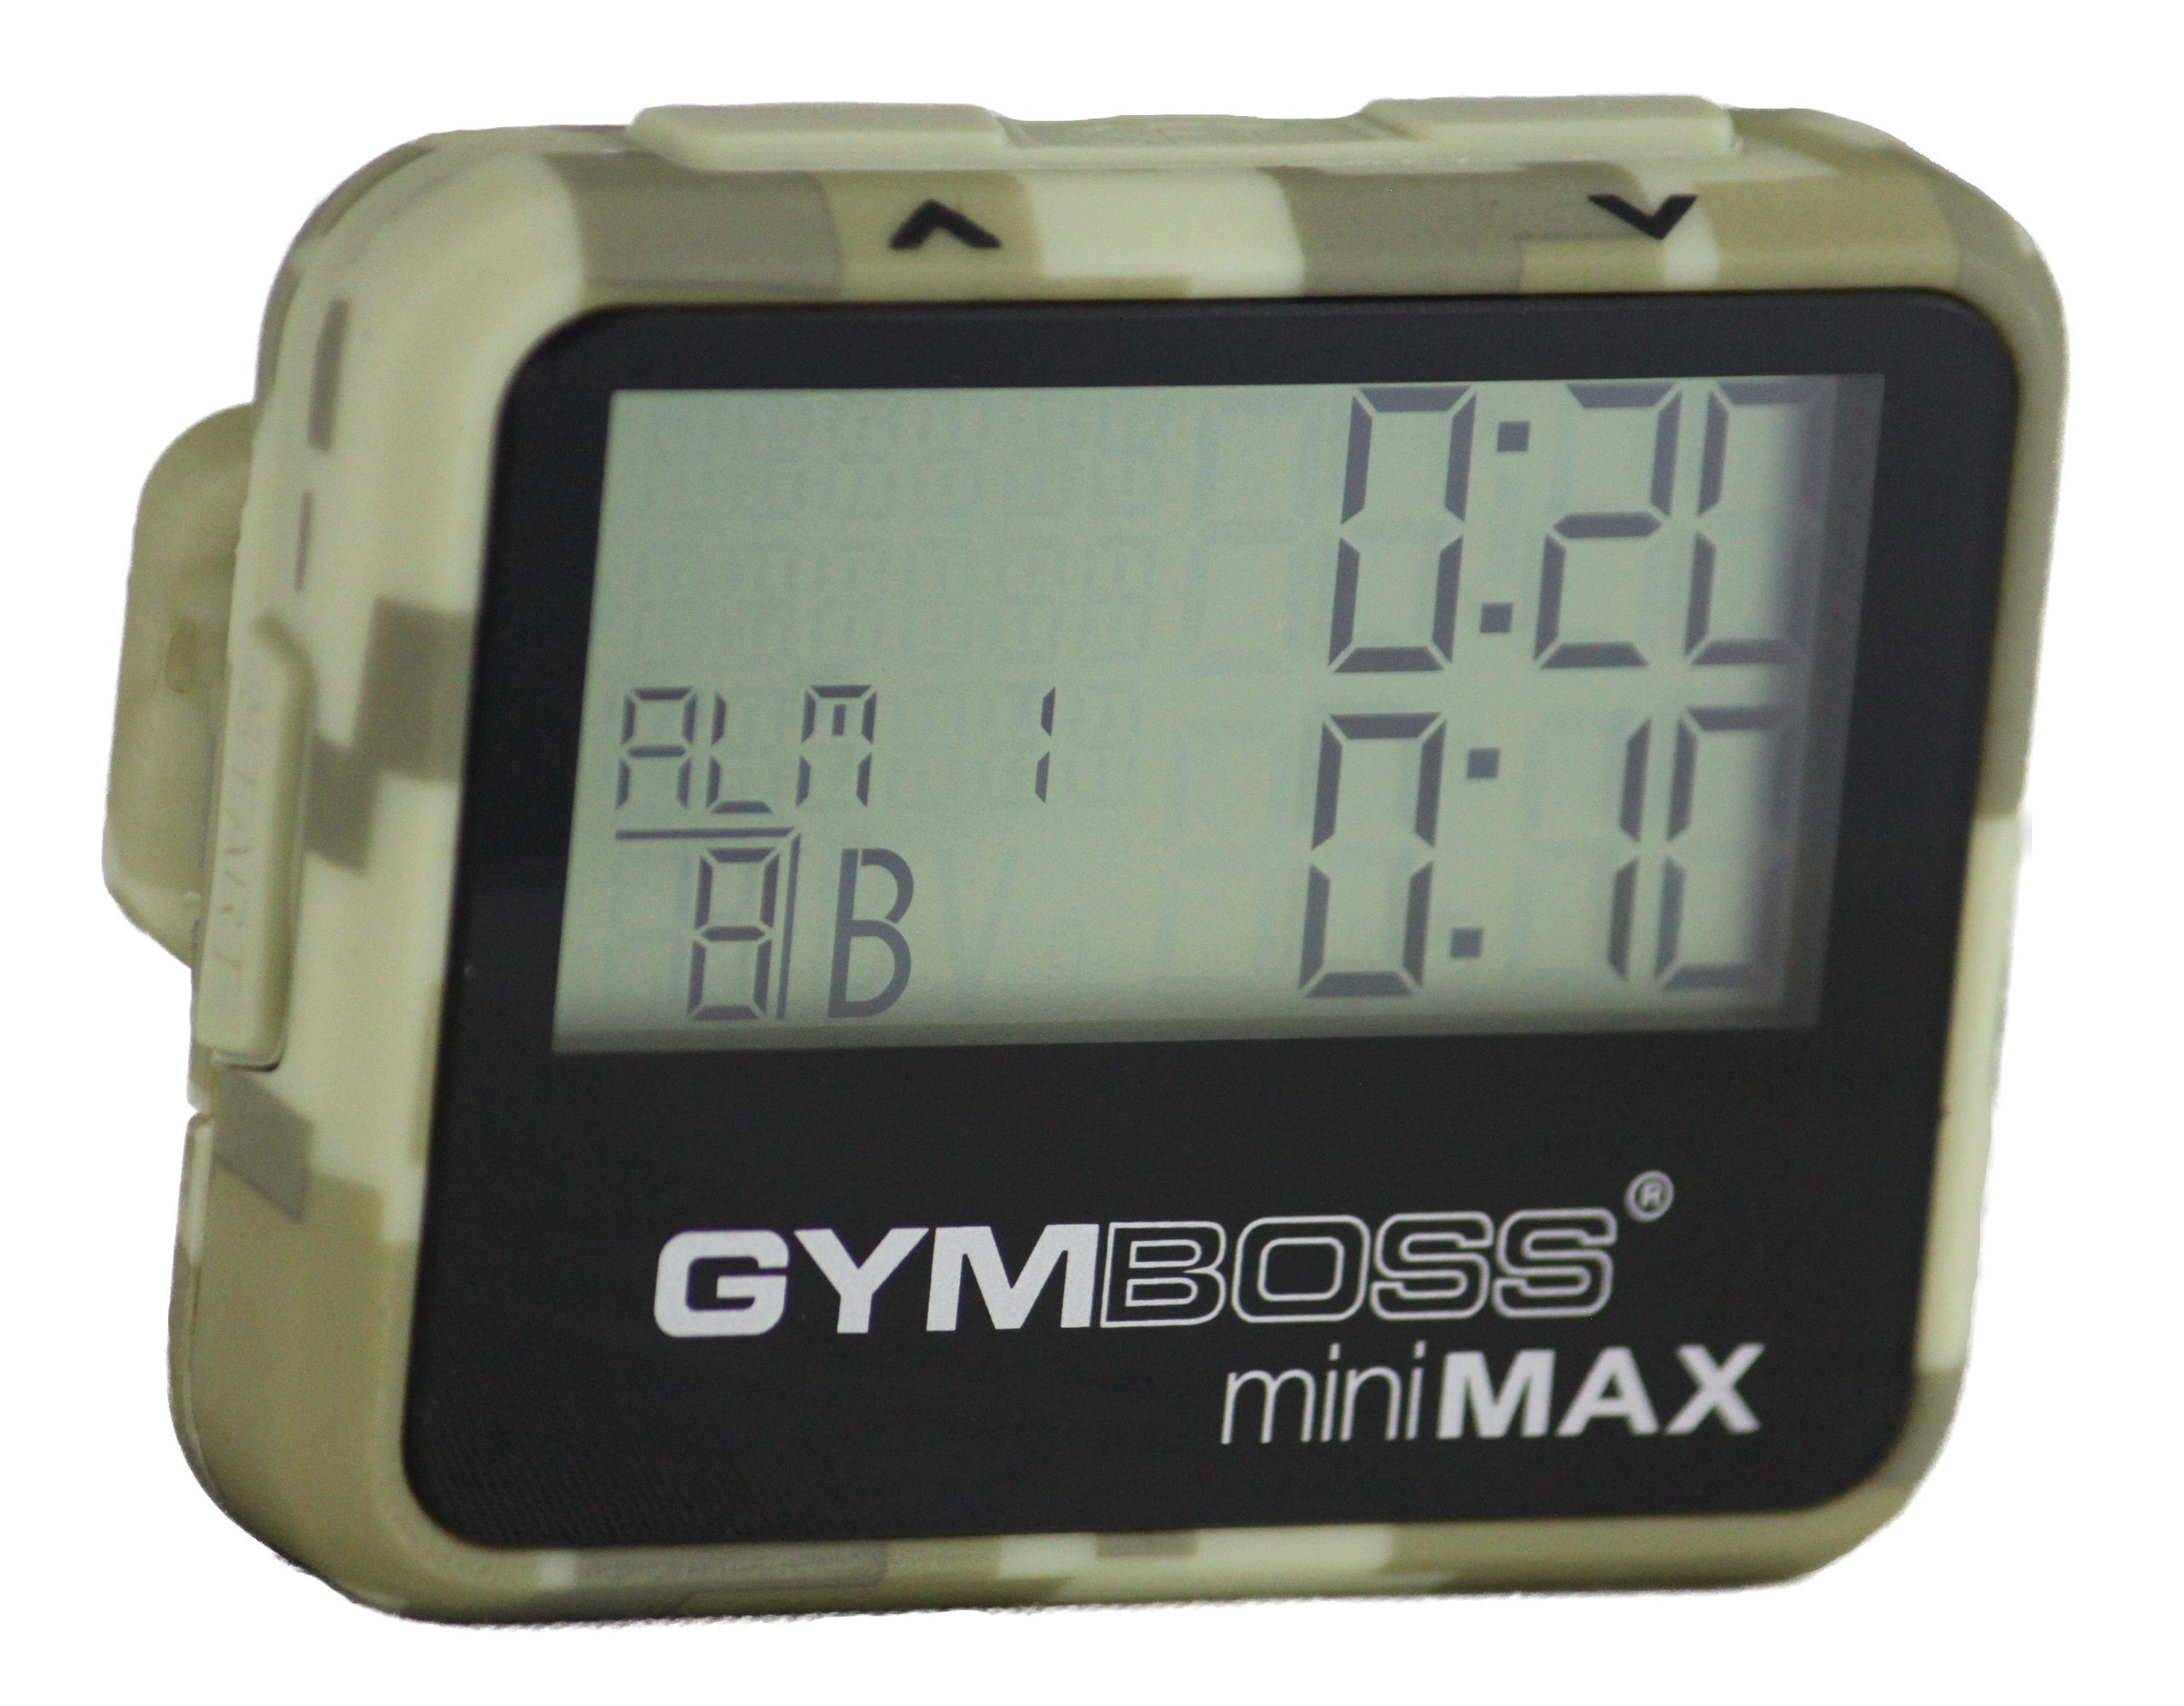 Gymboss miniMAX Interval Timer and Stopwatch - Camouflage/TAN SOFTCOAT by Gymboss